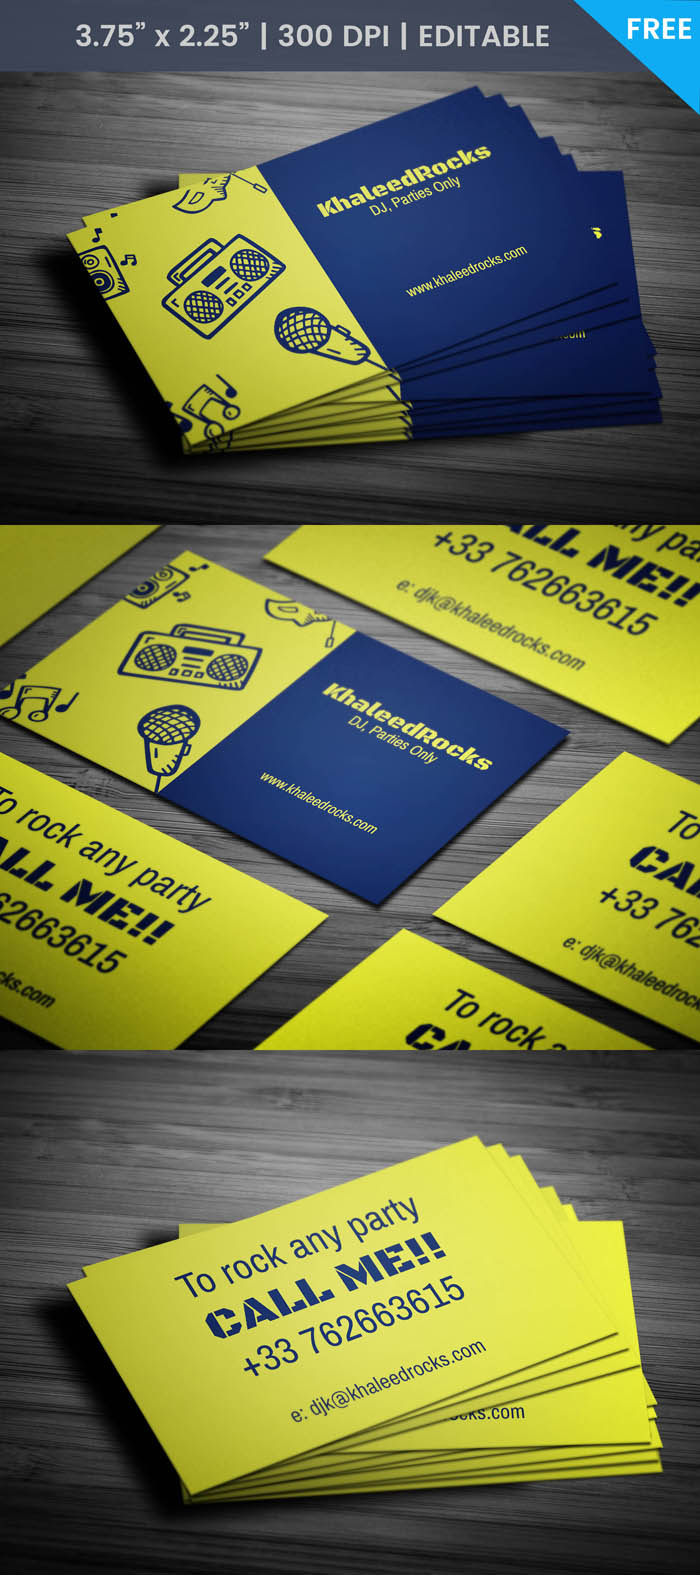 Audio Engineer Business Card - Full Preview